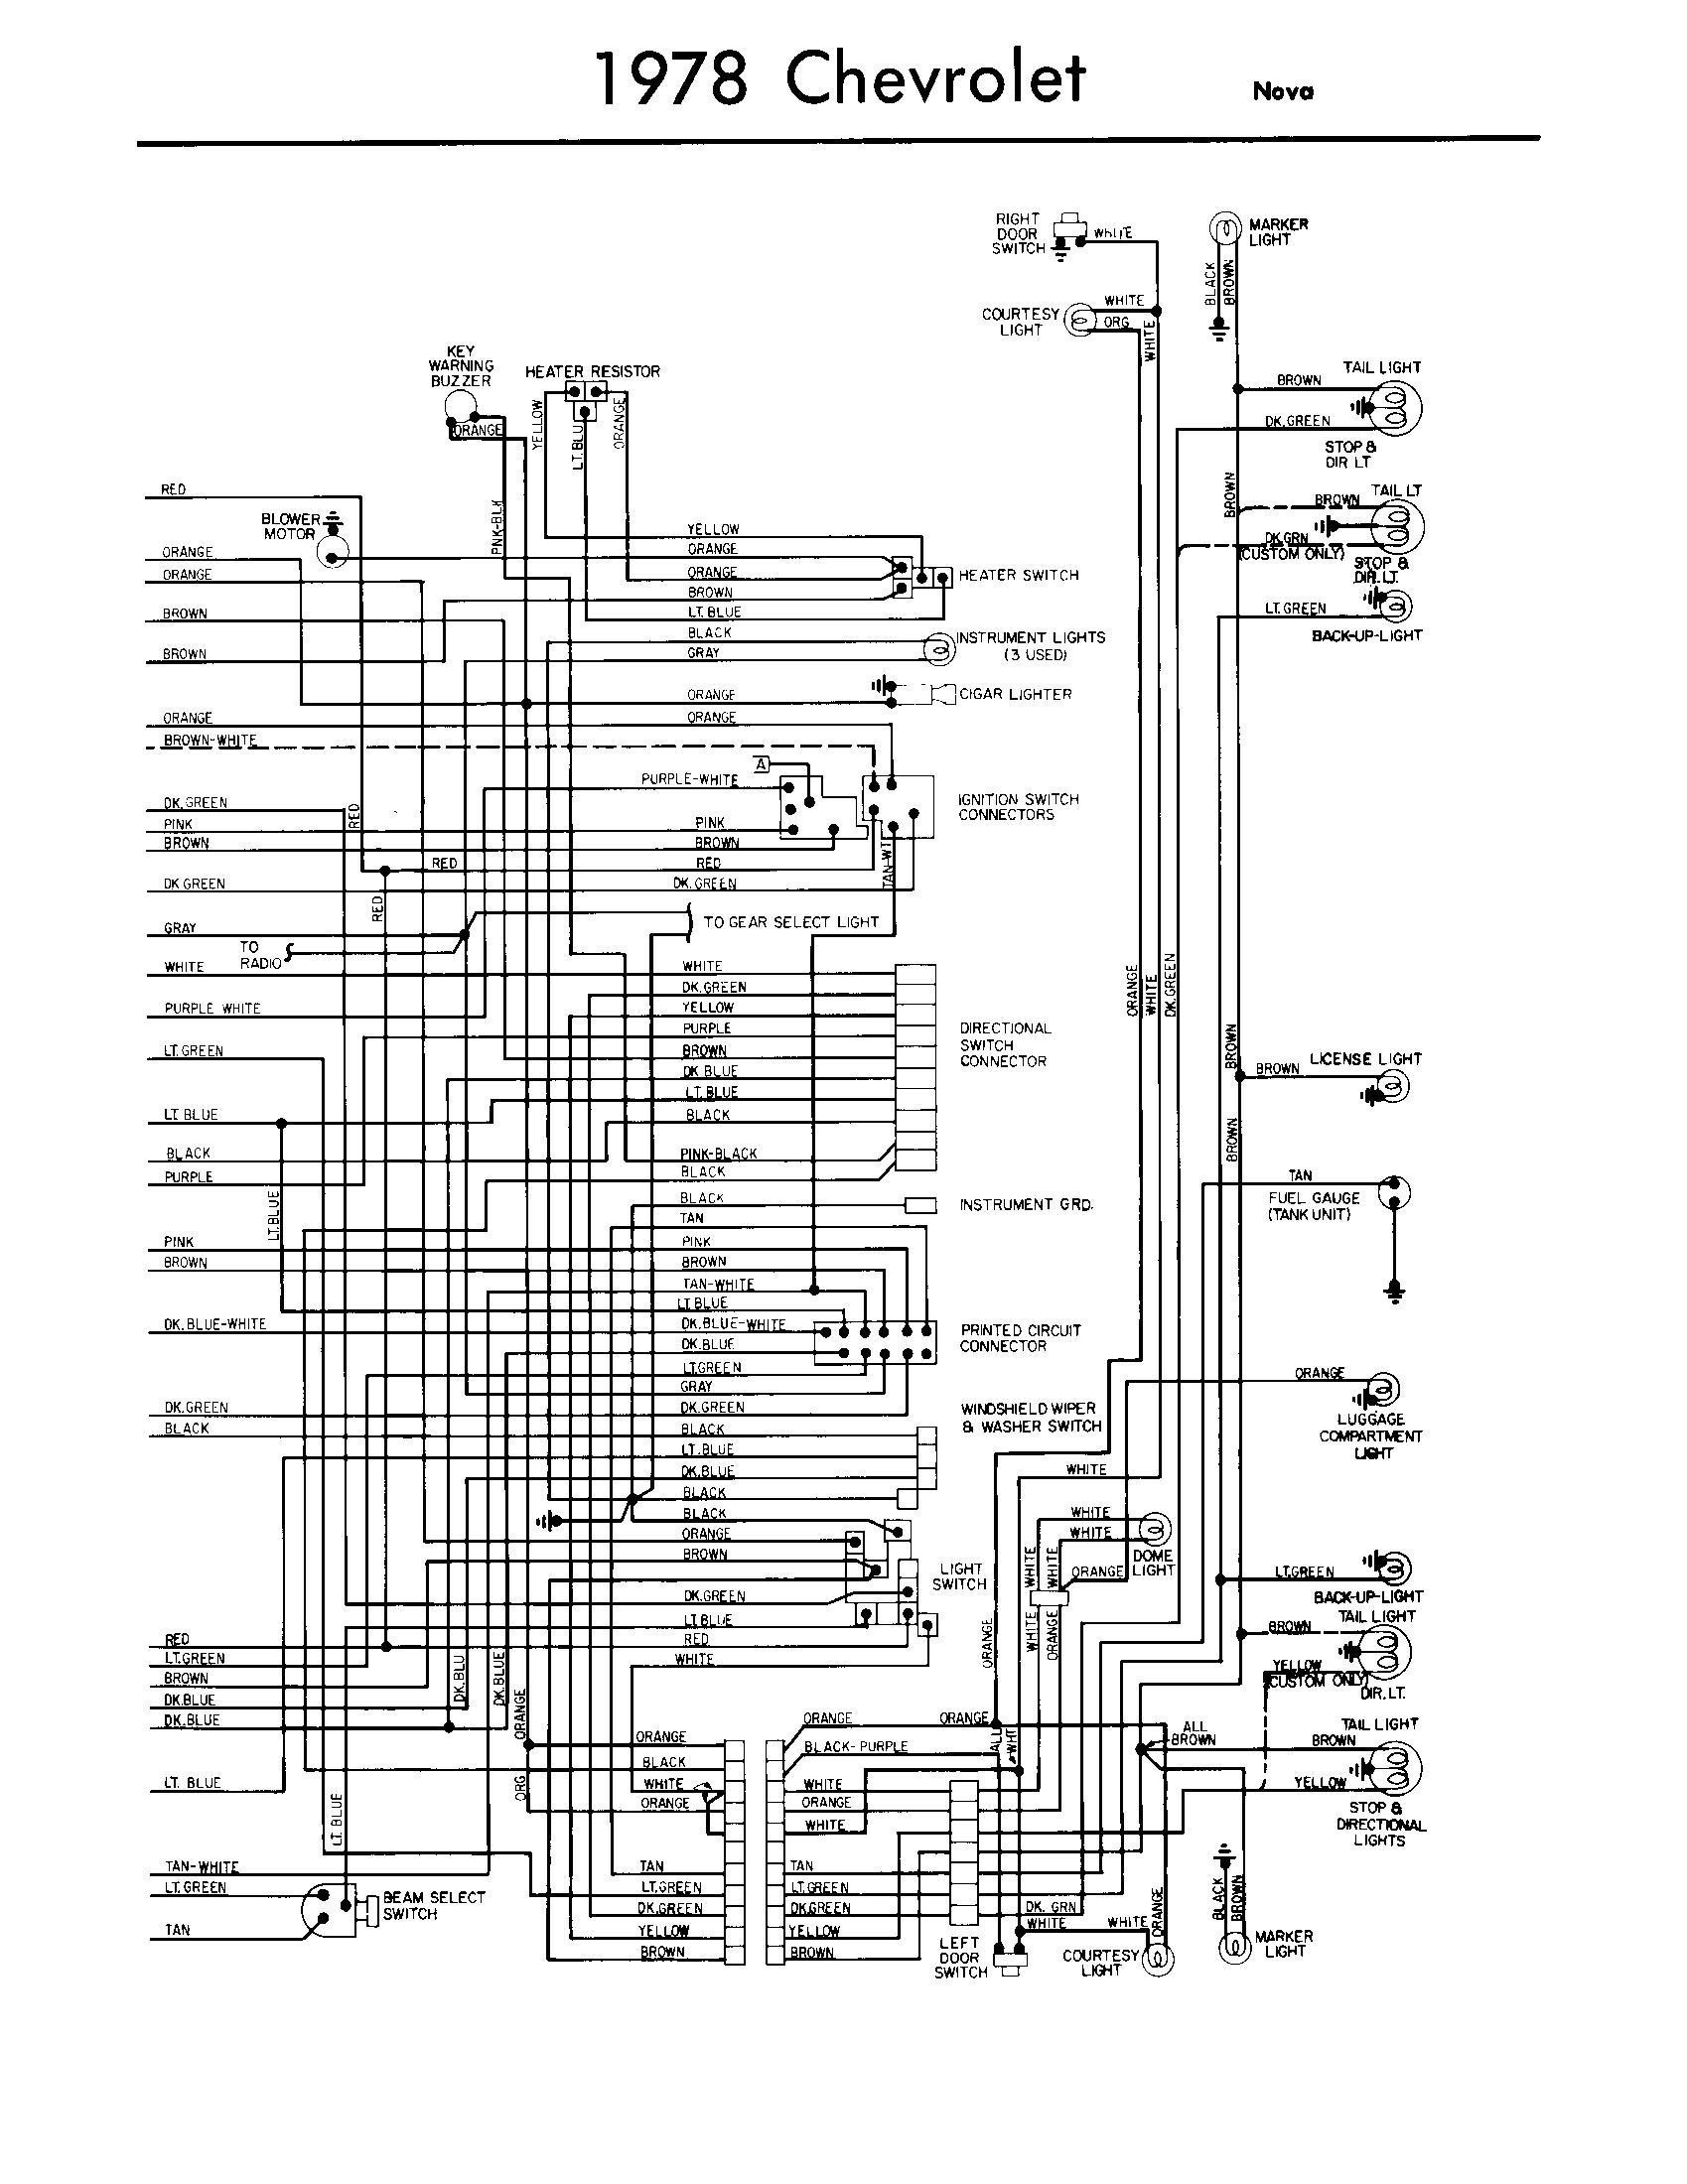 hight resolution of c10 wiring harness schematic wiring diagram 1966 chevrolet c10 wiring harness 1966 chevy c10 wiring harness